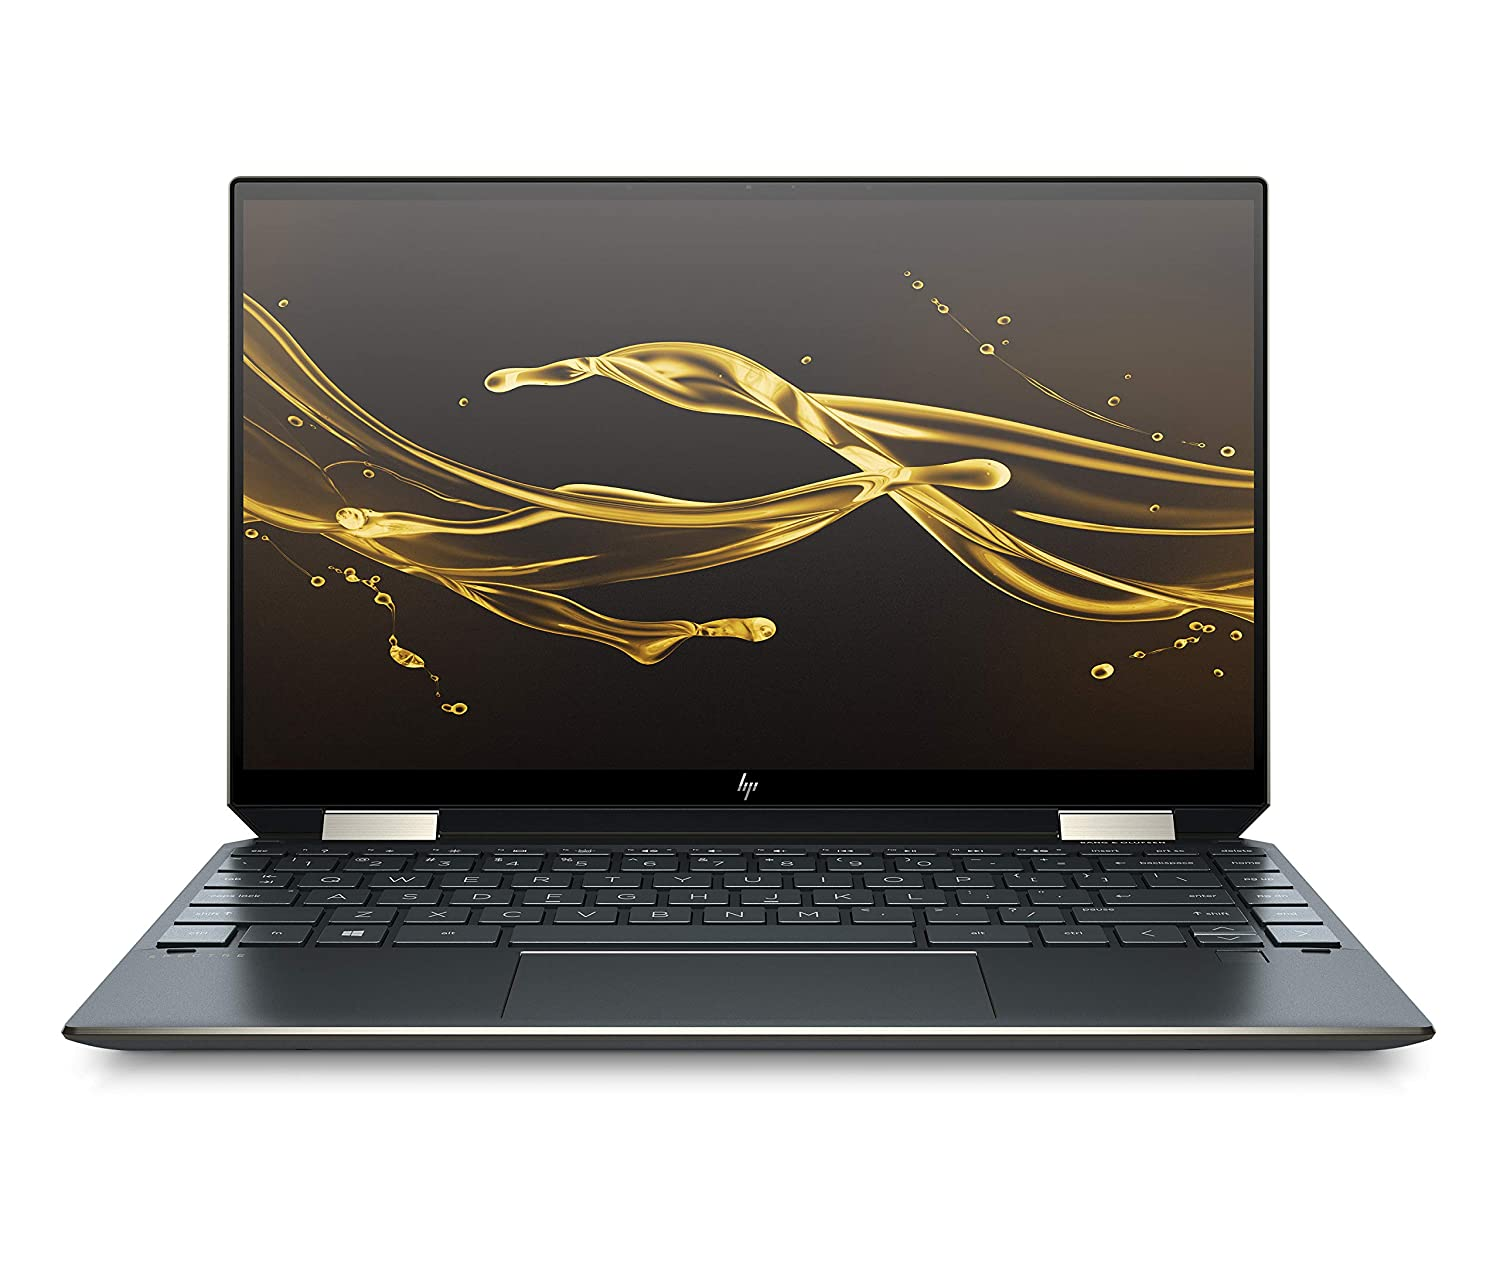 Most durable laptops to buy this year on showict.com